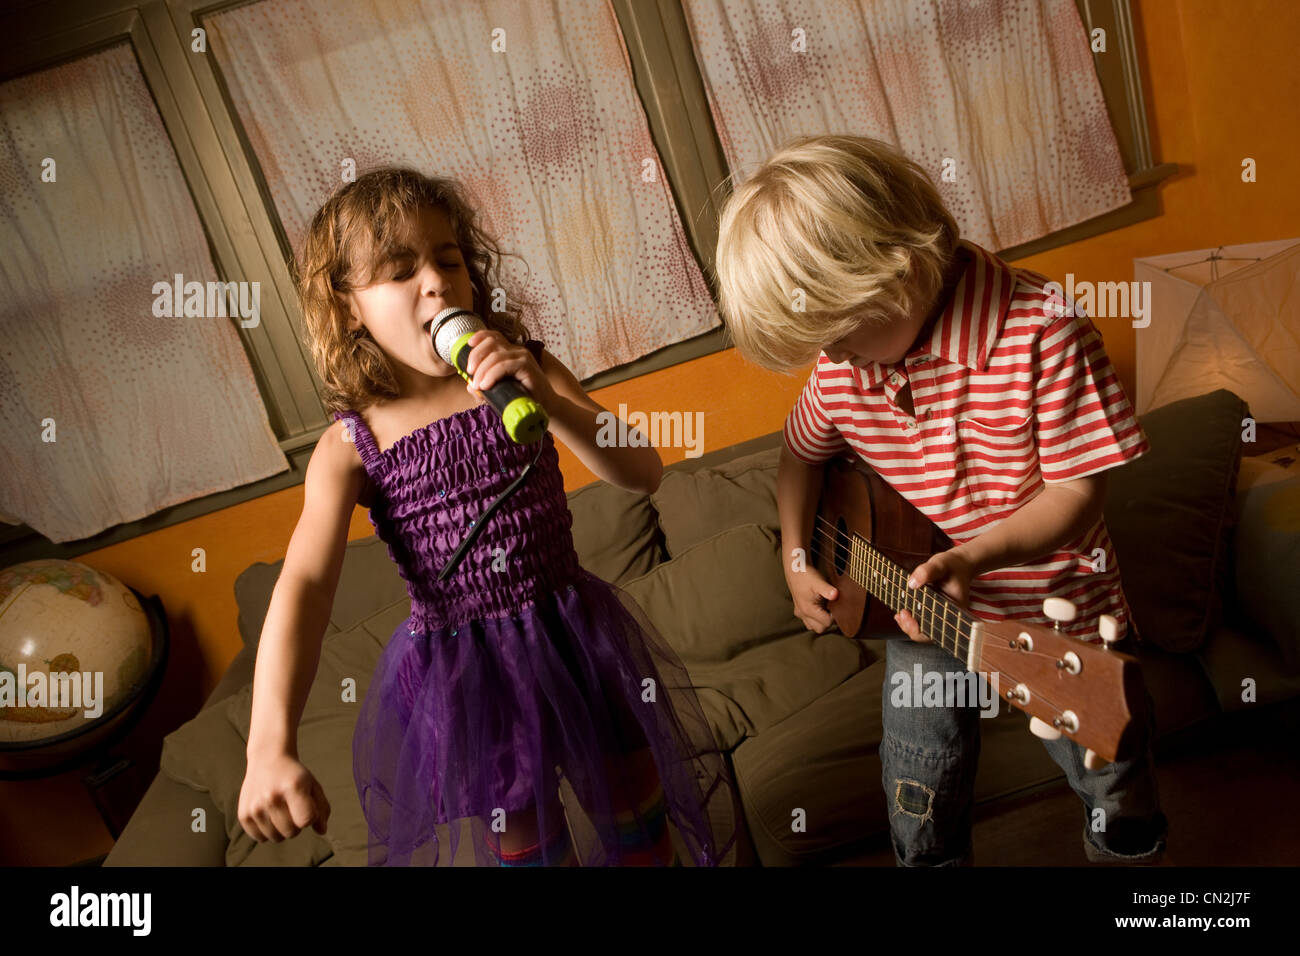 Girl singing with microphone with boy playing guitar - Stock Image